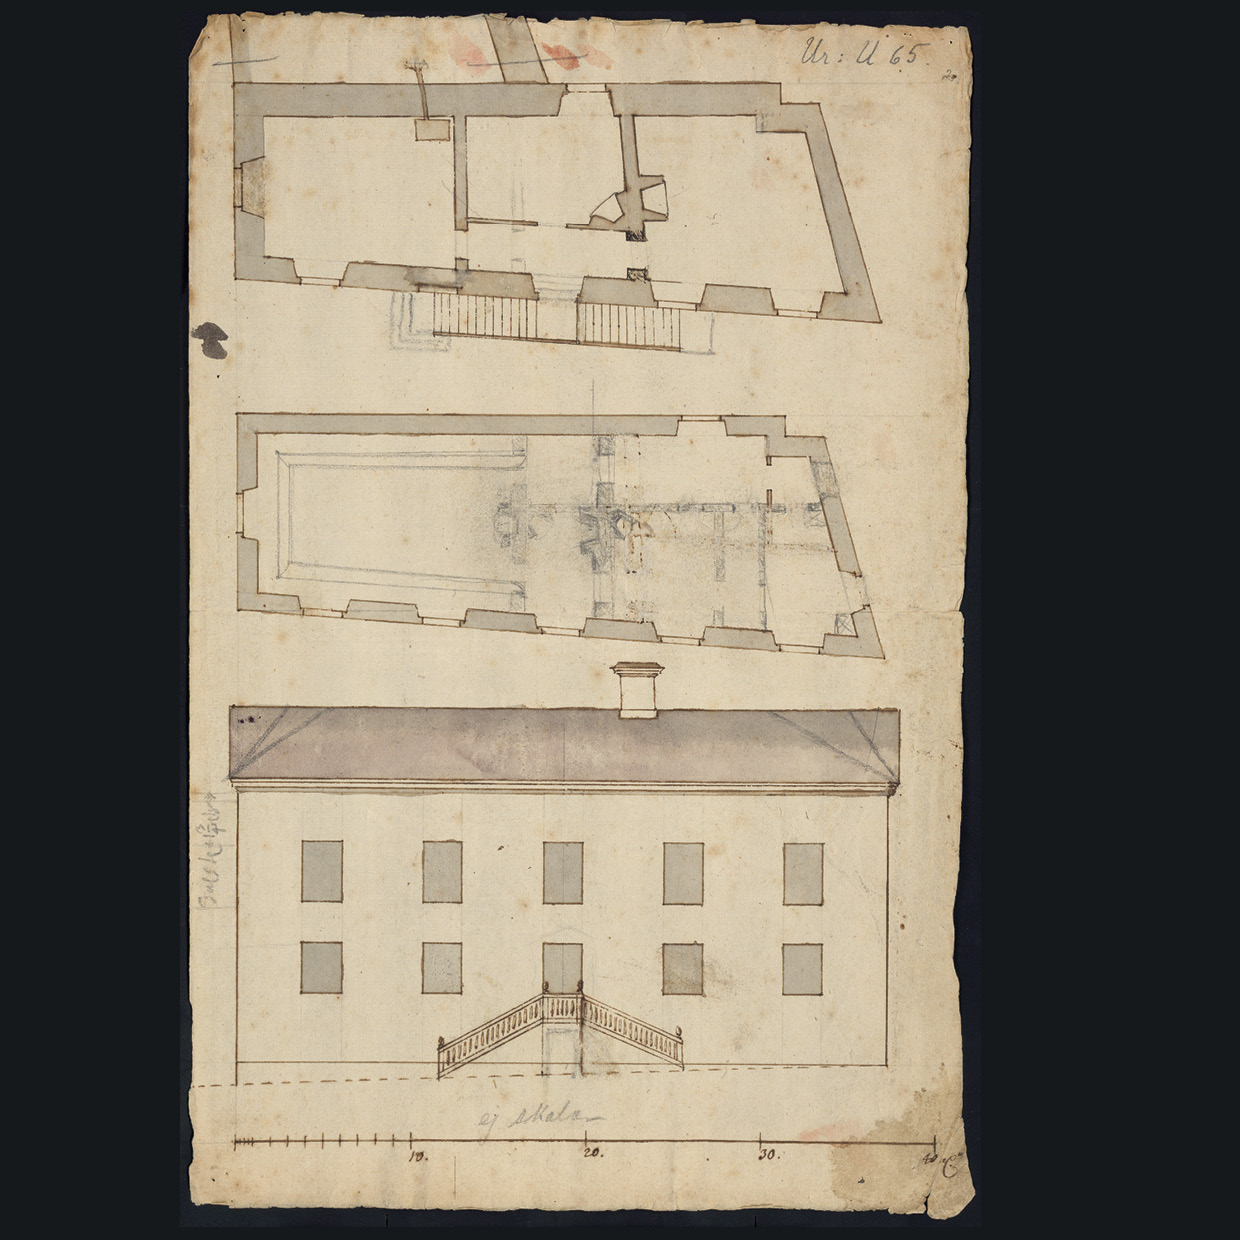 plan of a building, also a plan of the front